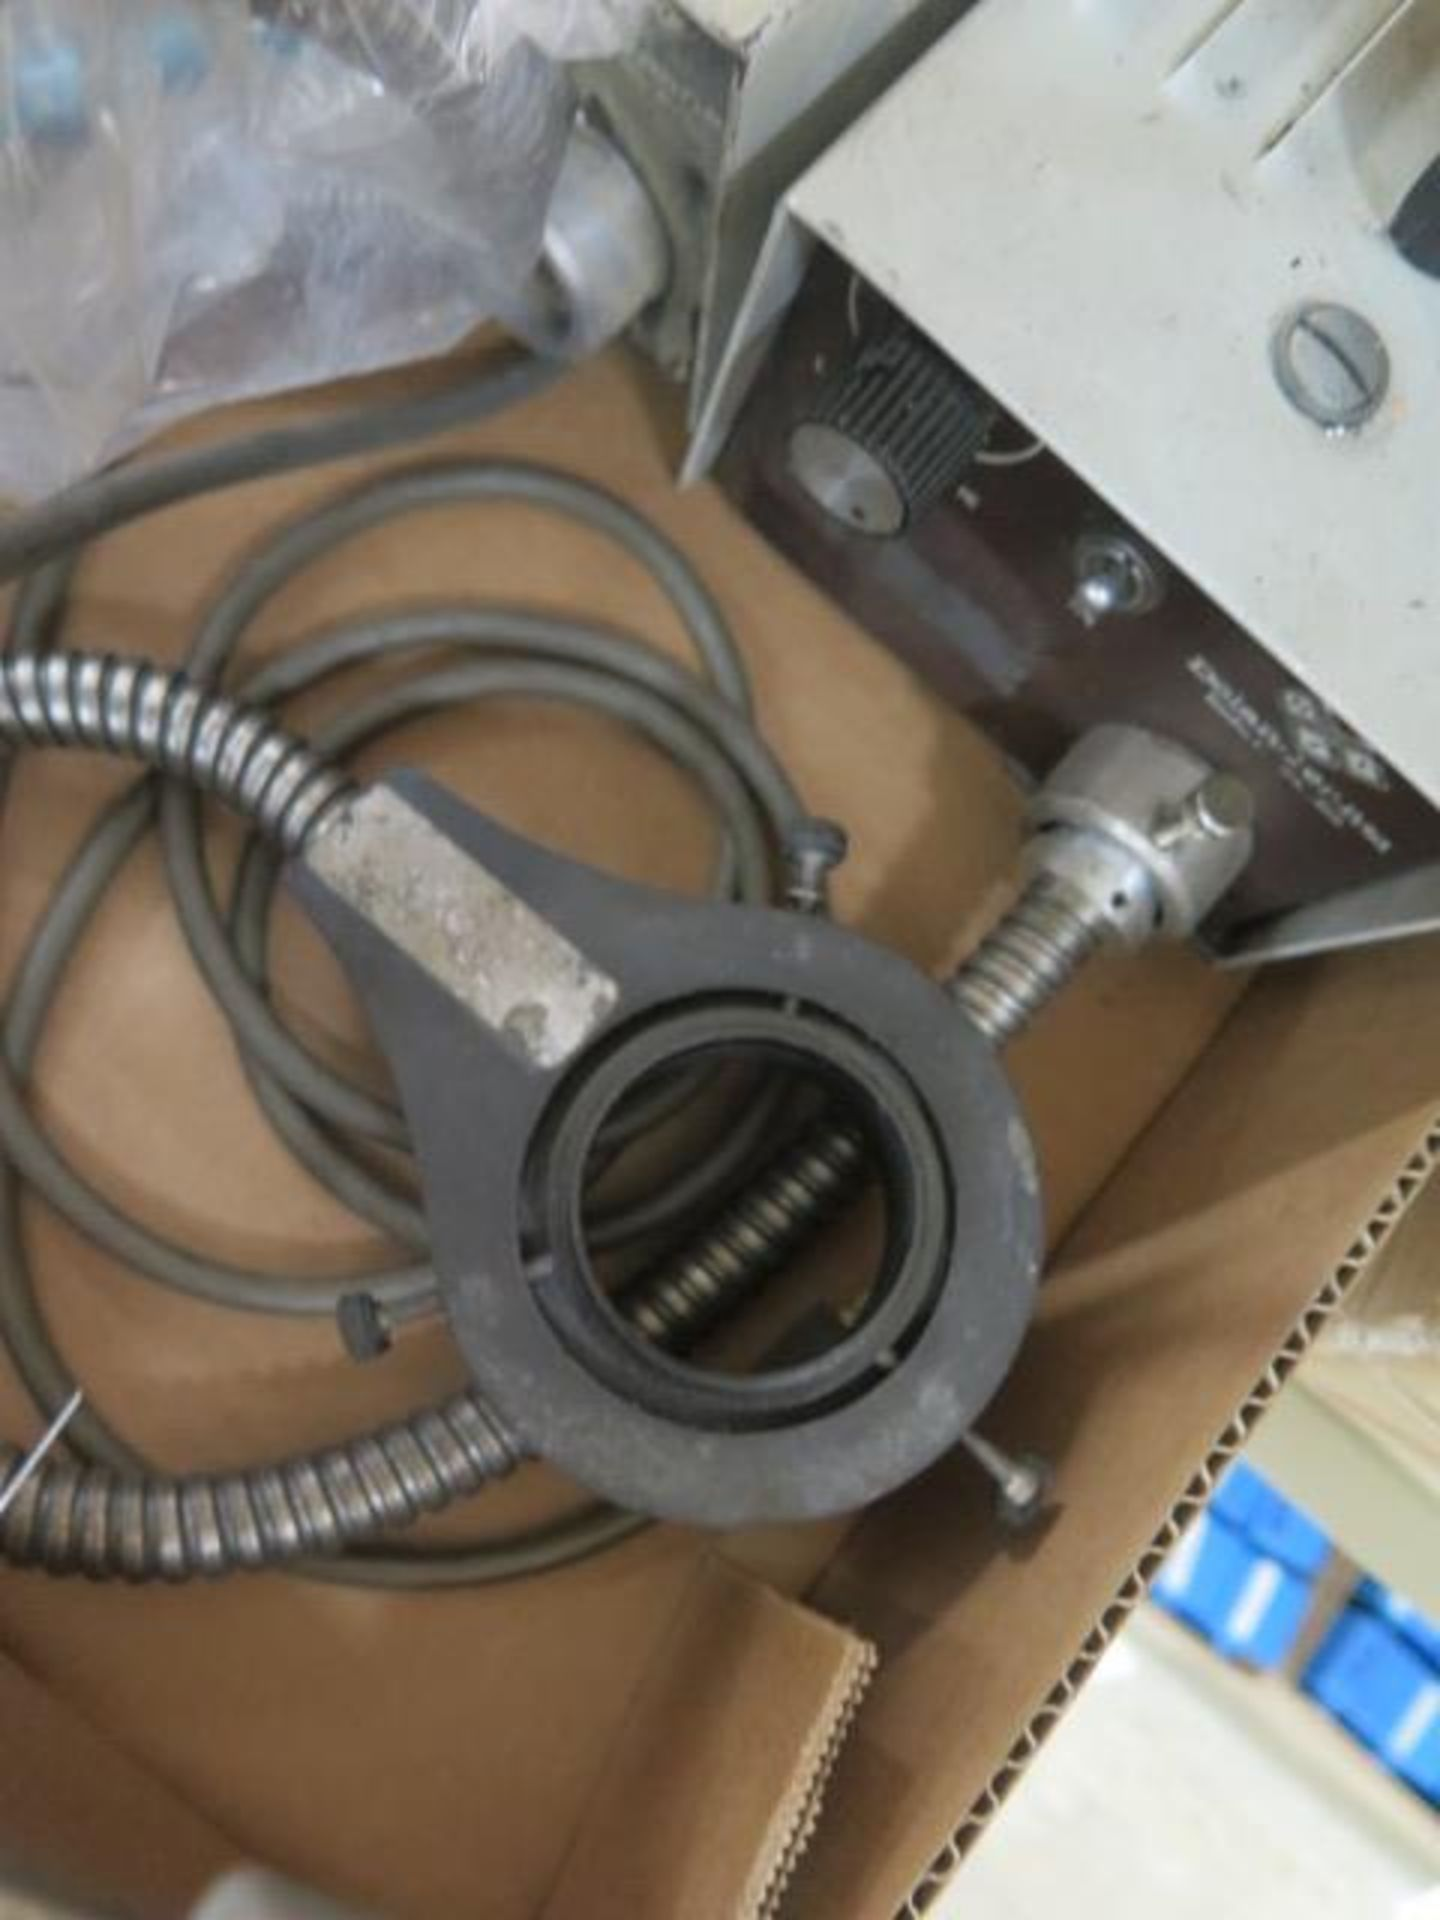 Fiber-Optic Light Sources (2) (SOLD AS-IS - NO WARRANTY) - Image 4 of 5